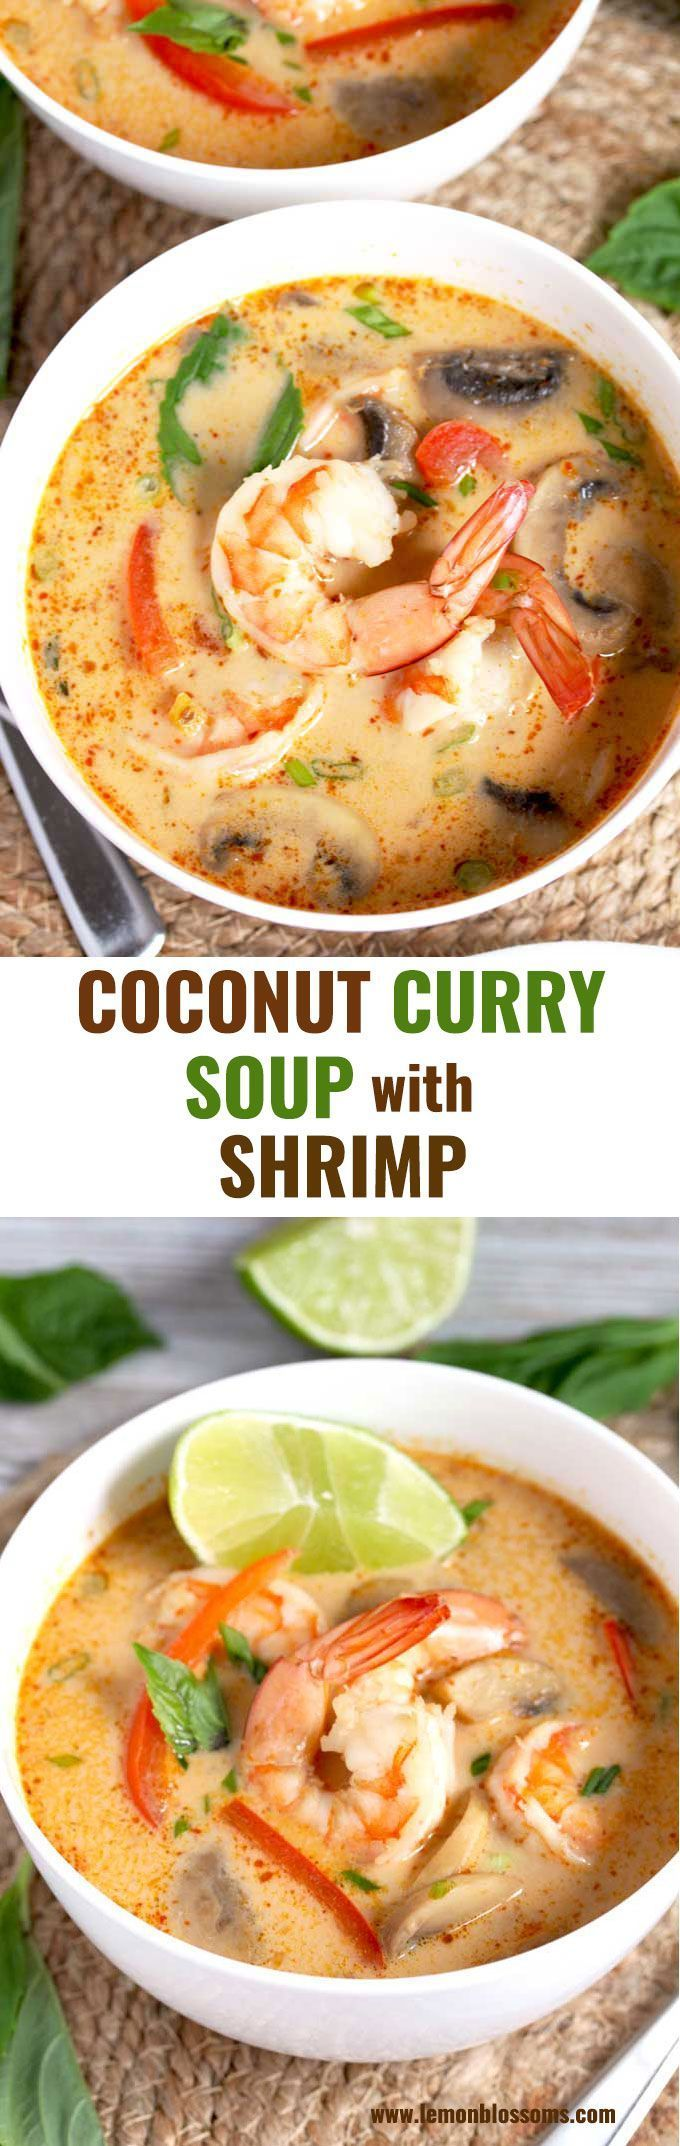 This Coconut Curry Soup is infused with ginger, garlic, red curry paste and coco